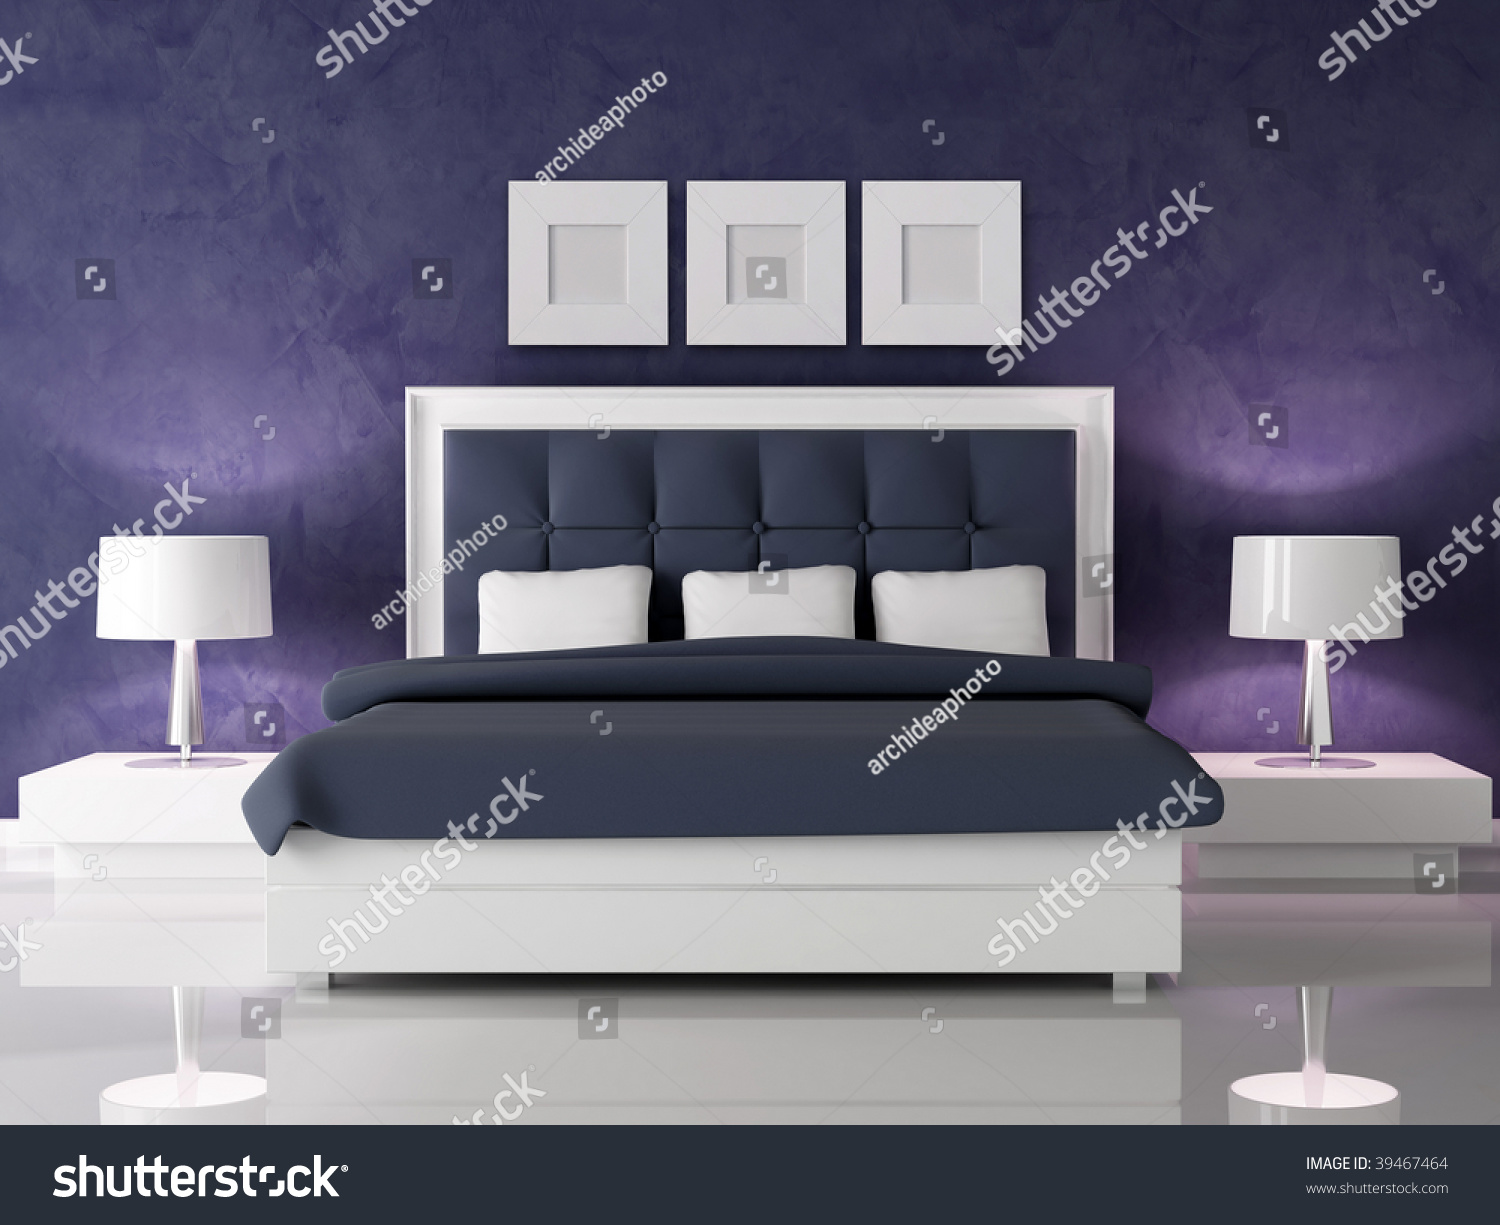 Fashion white and navy blue bedroom against dark purple stucco wall rendering